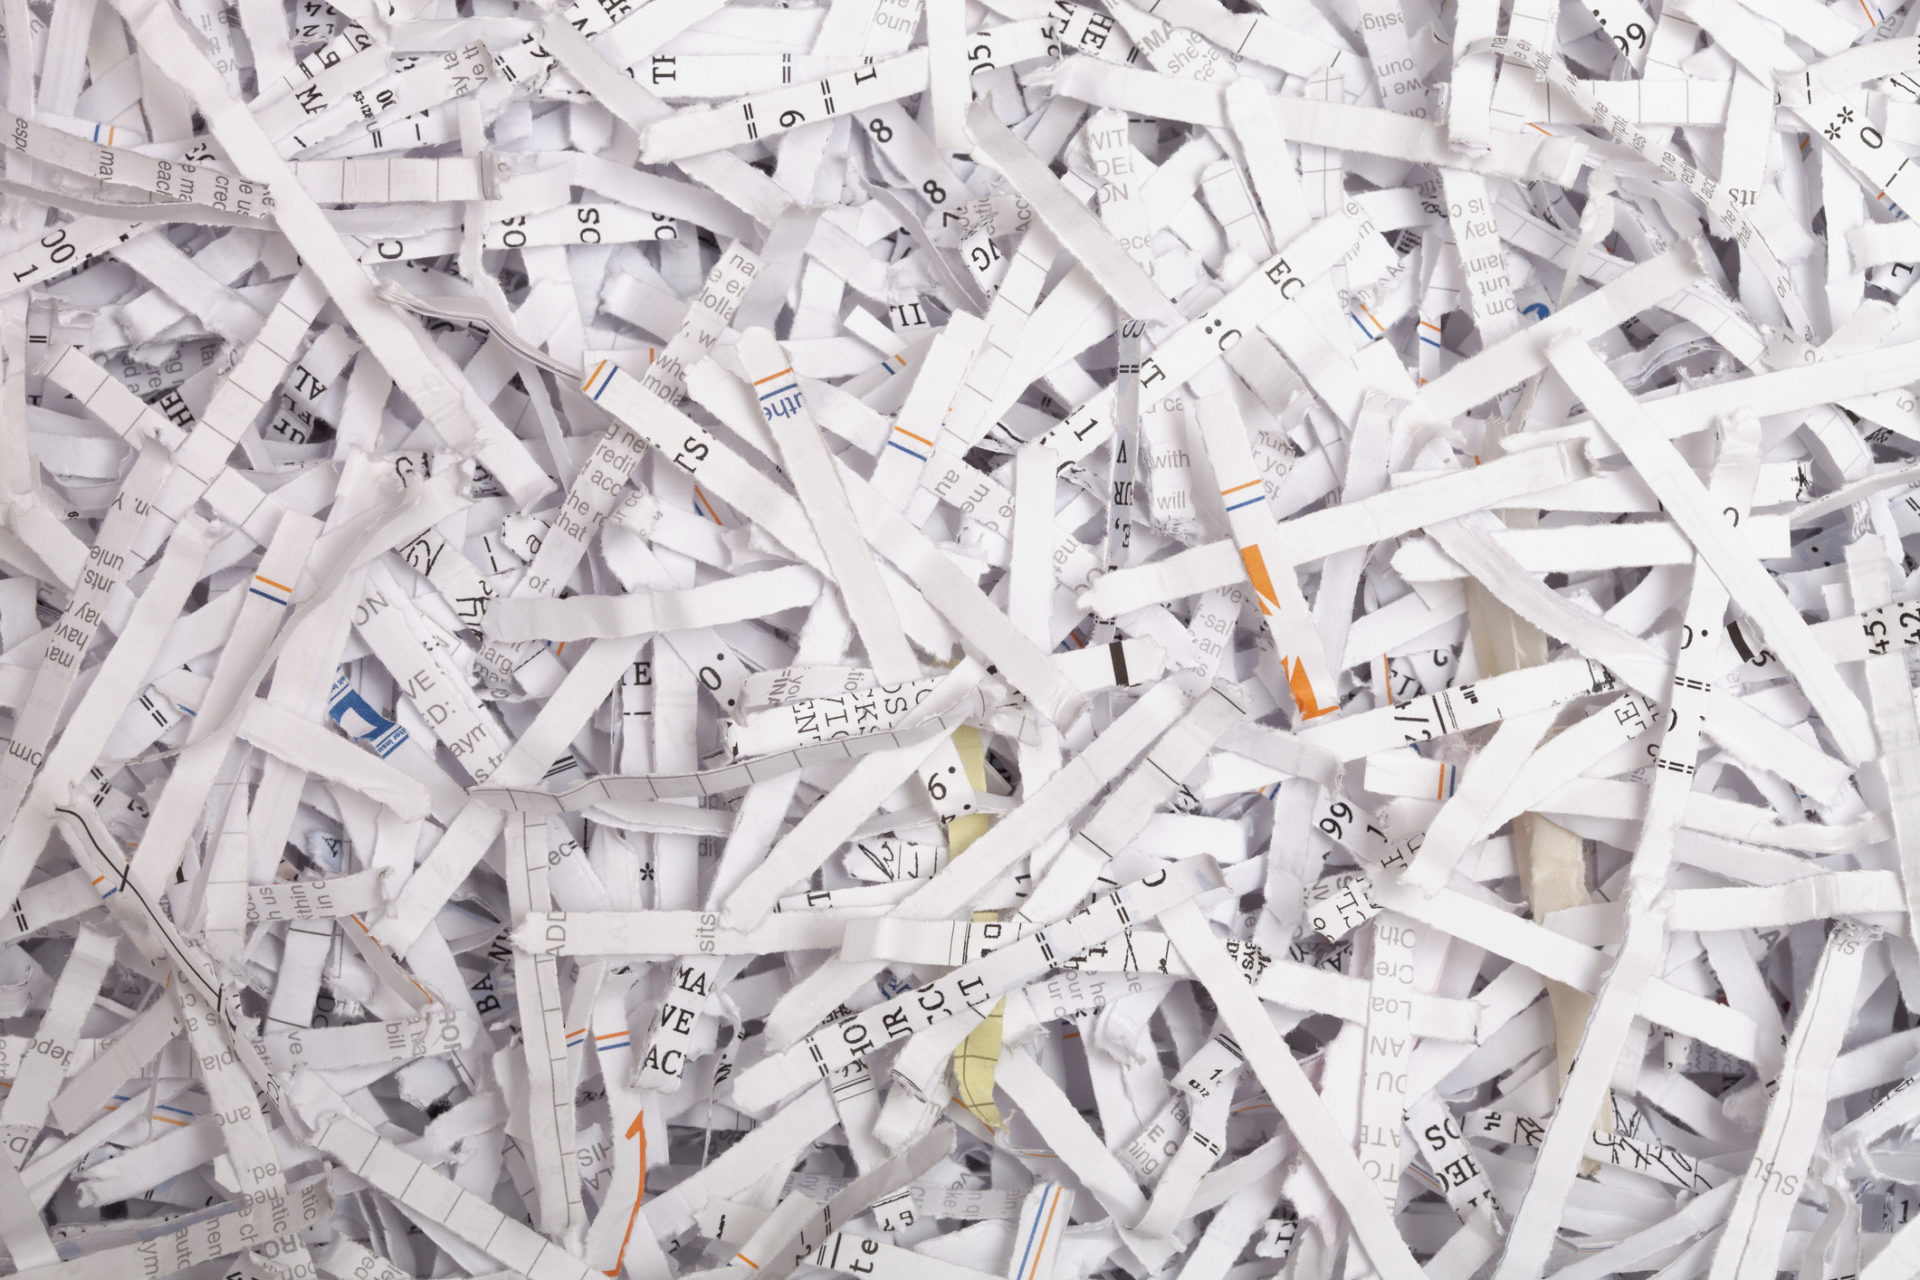 Electronics Recycling and Safe Document Destruction